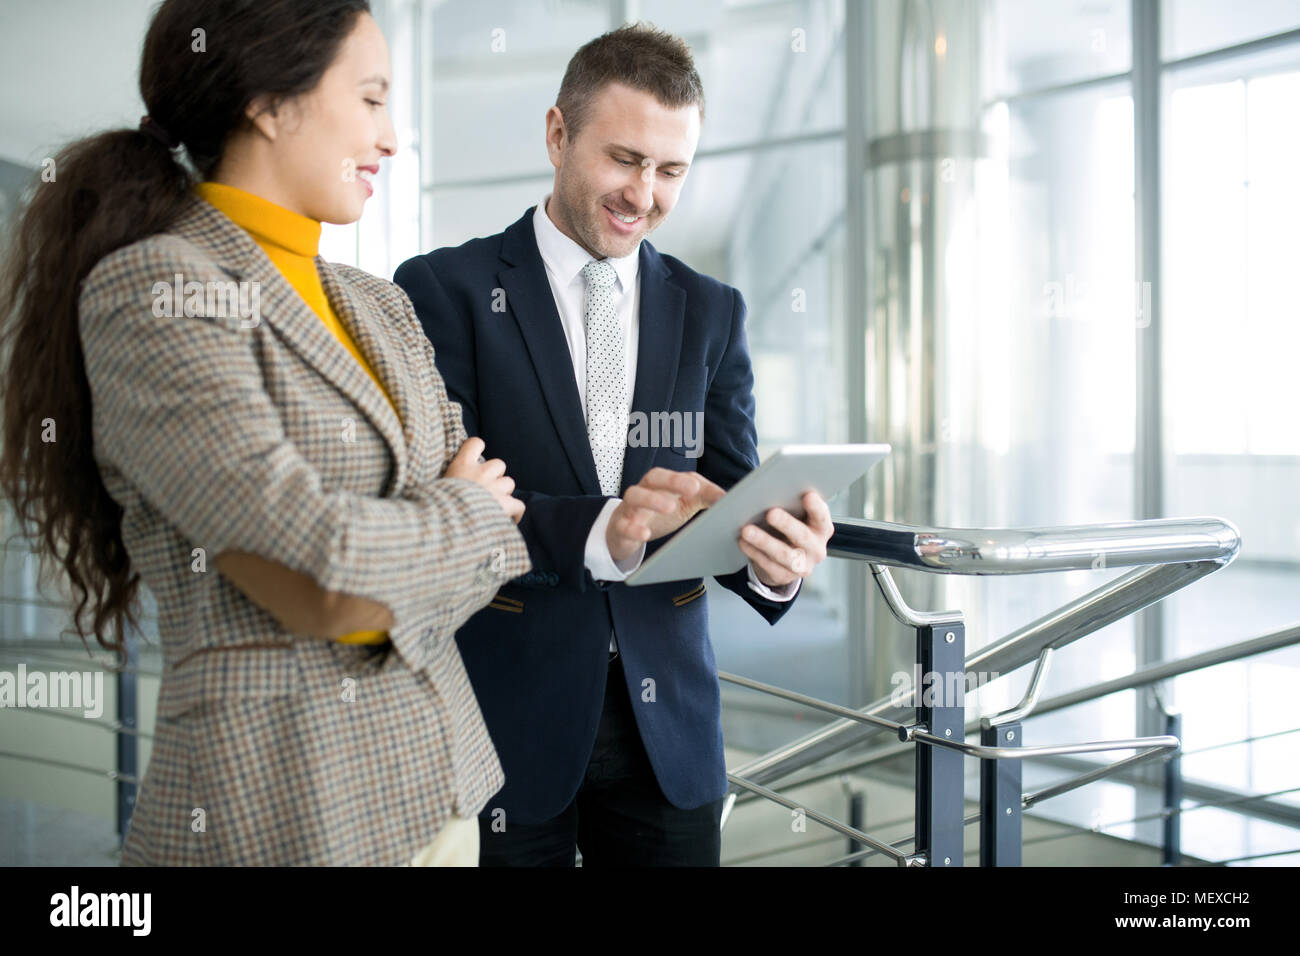 Positive businessman with assistant using tablet Stock Photo